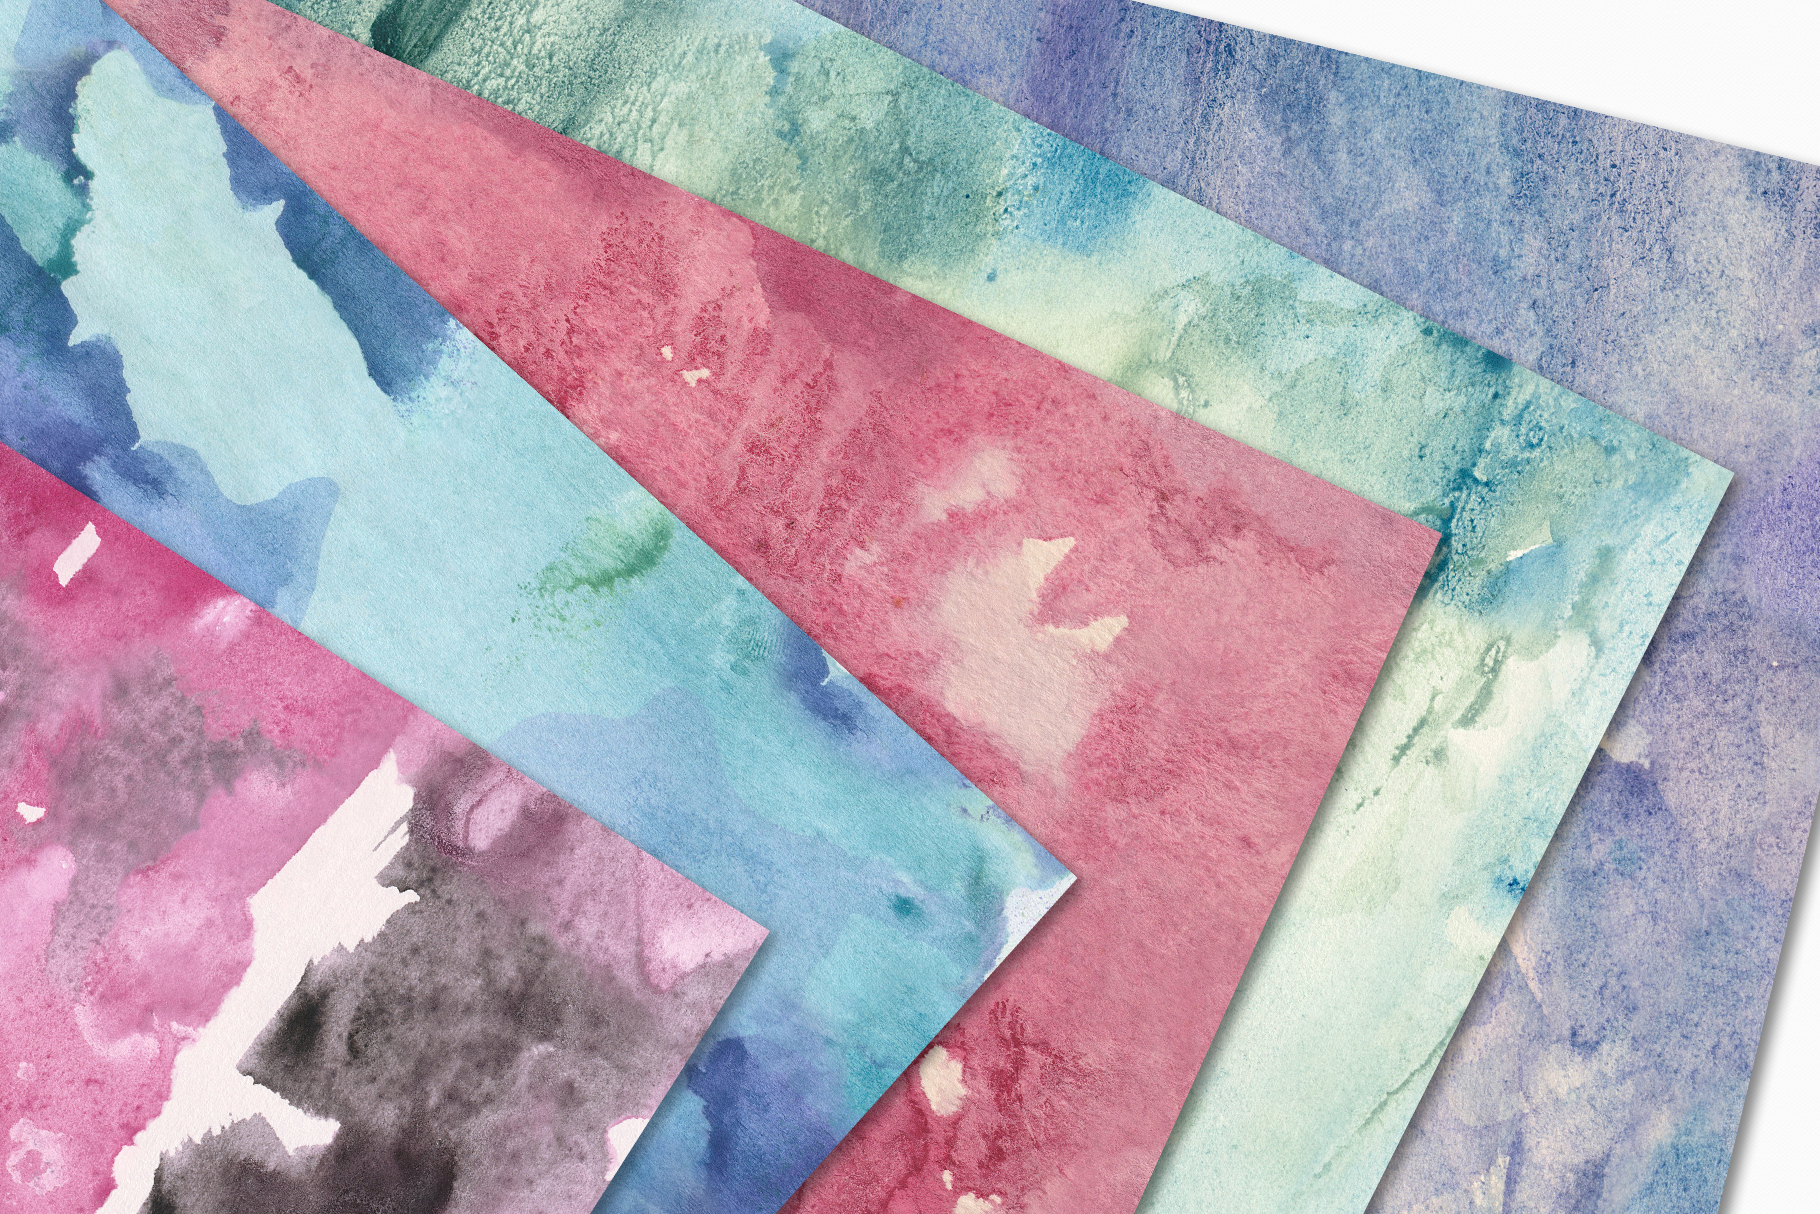 Seamless Watercolor Textures - 10 Watercolour Backgrounds example image 4